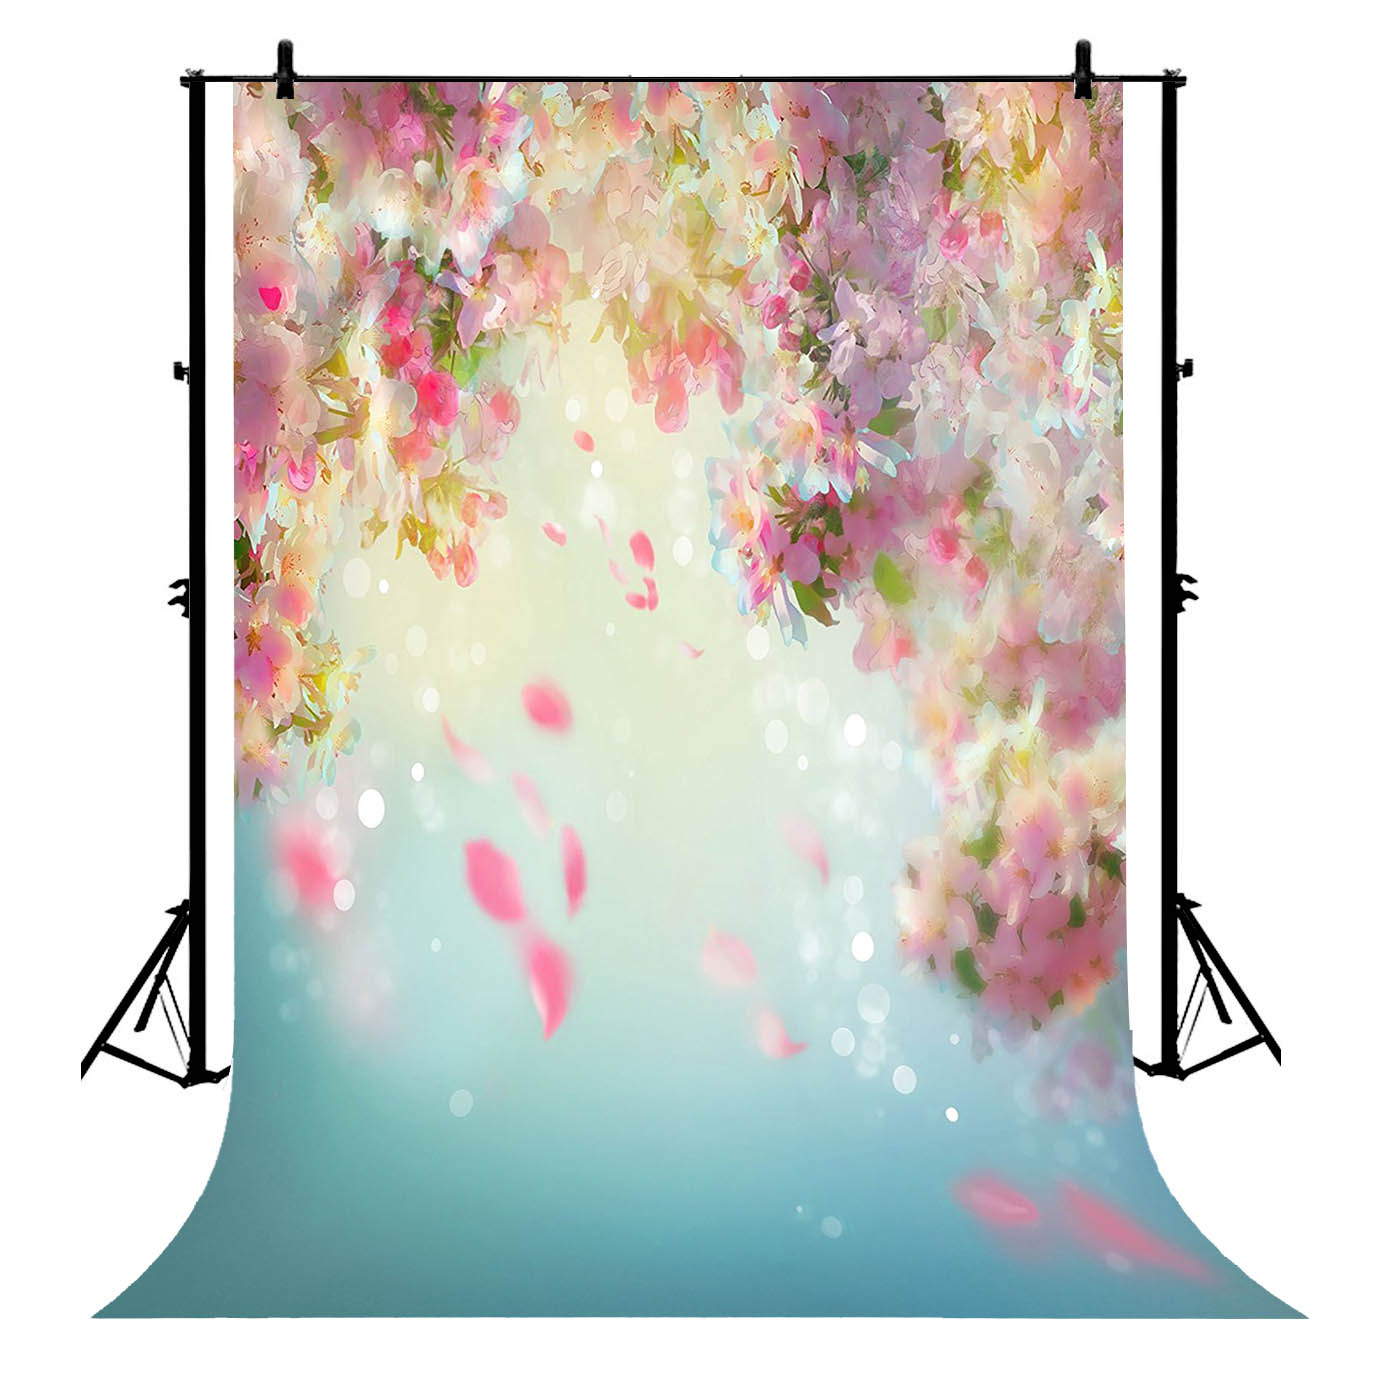 5x7ft Pink Flowers Blur Polyester Photo Background Portrait Backdrop